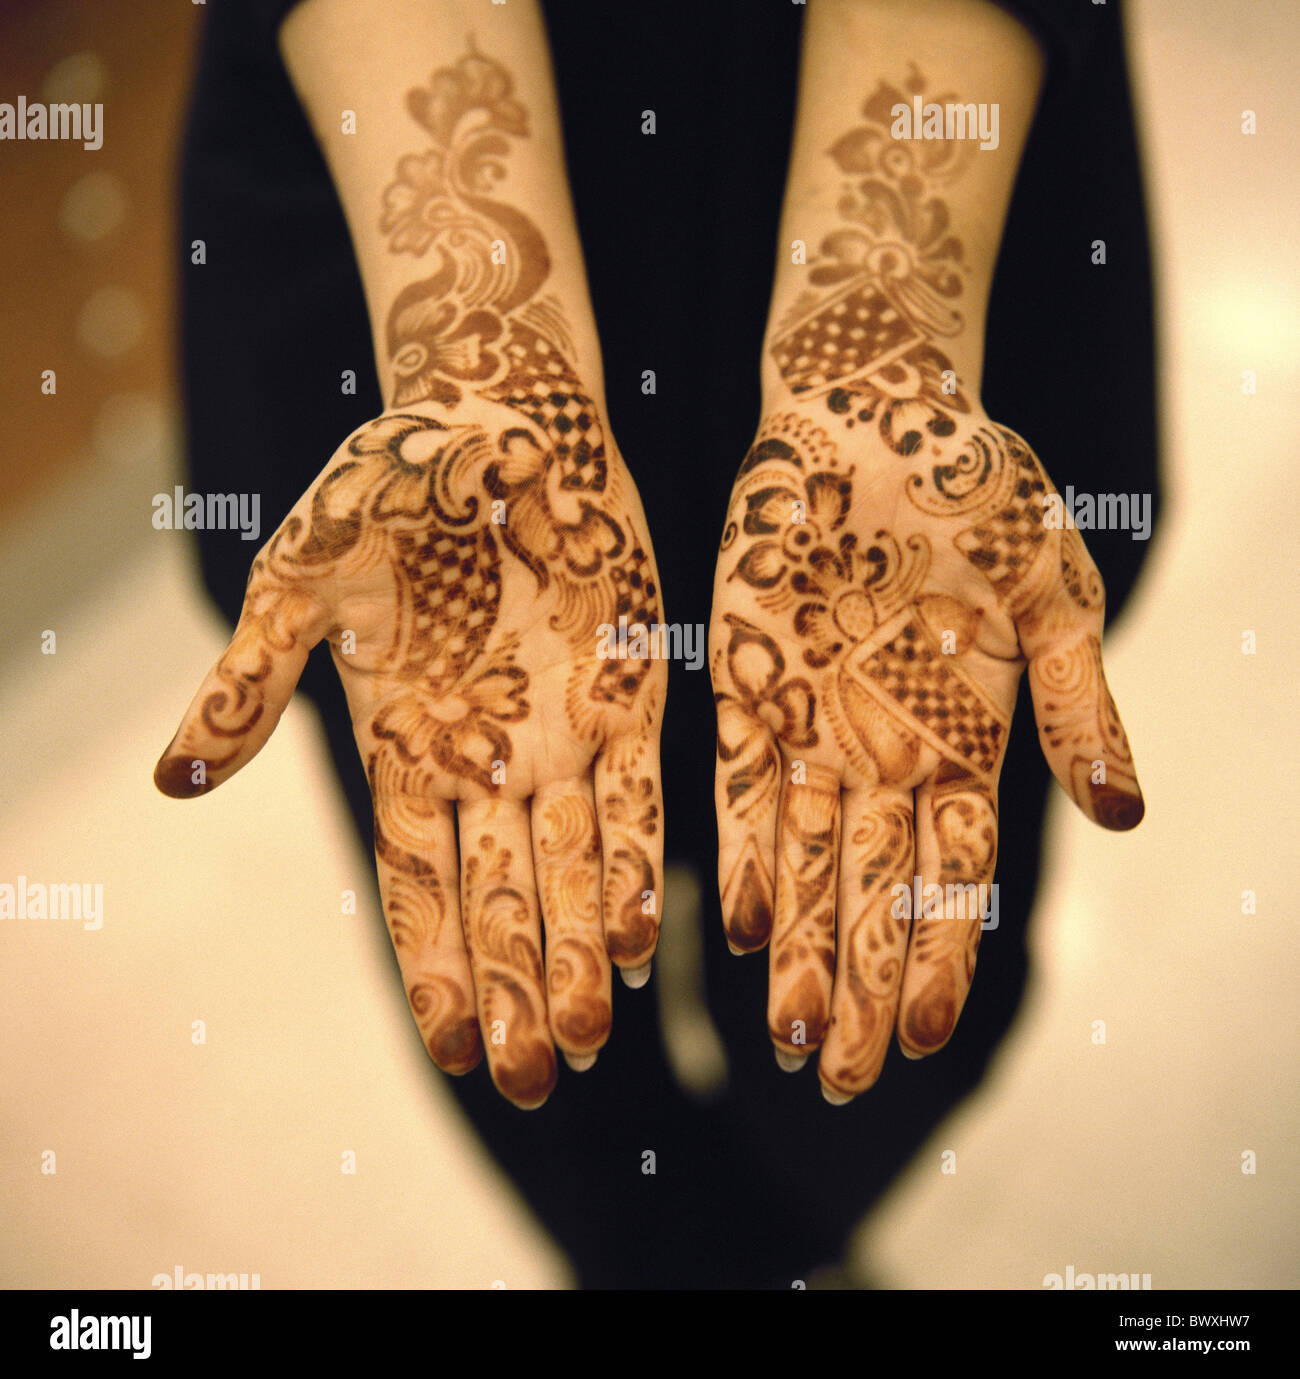 Dipinto 10331604 Bahrein donna mani henna vita campione di motivo di close-up di ornamenti tattoo Foto Stock